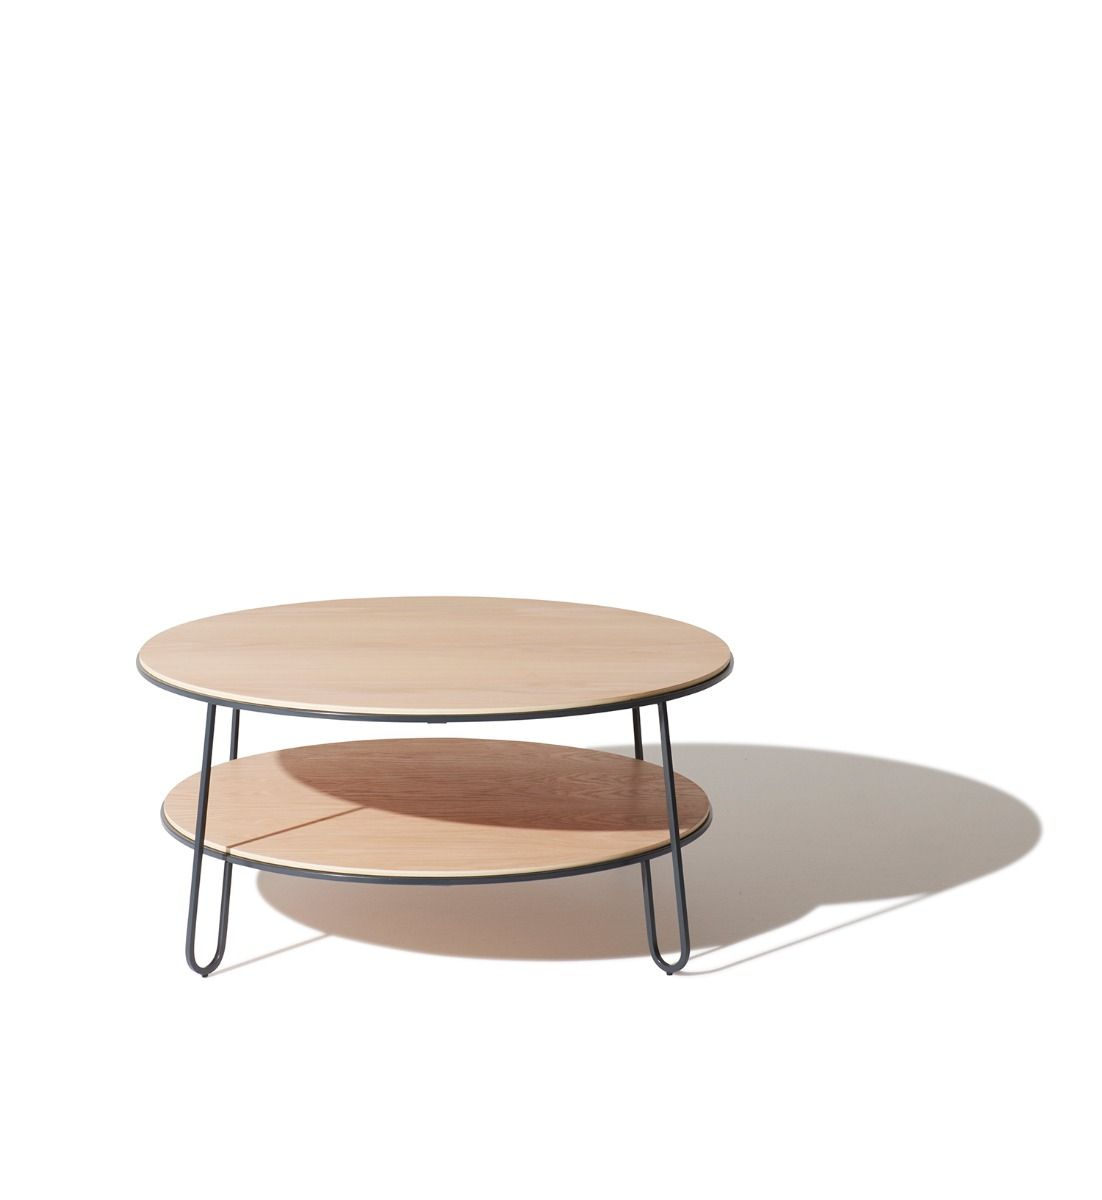 Eugenie Coffee Table Coffee Table Table Large Coffee Tables [ 1200 x 1102 Pixel ]